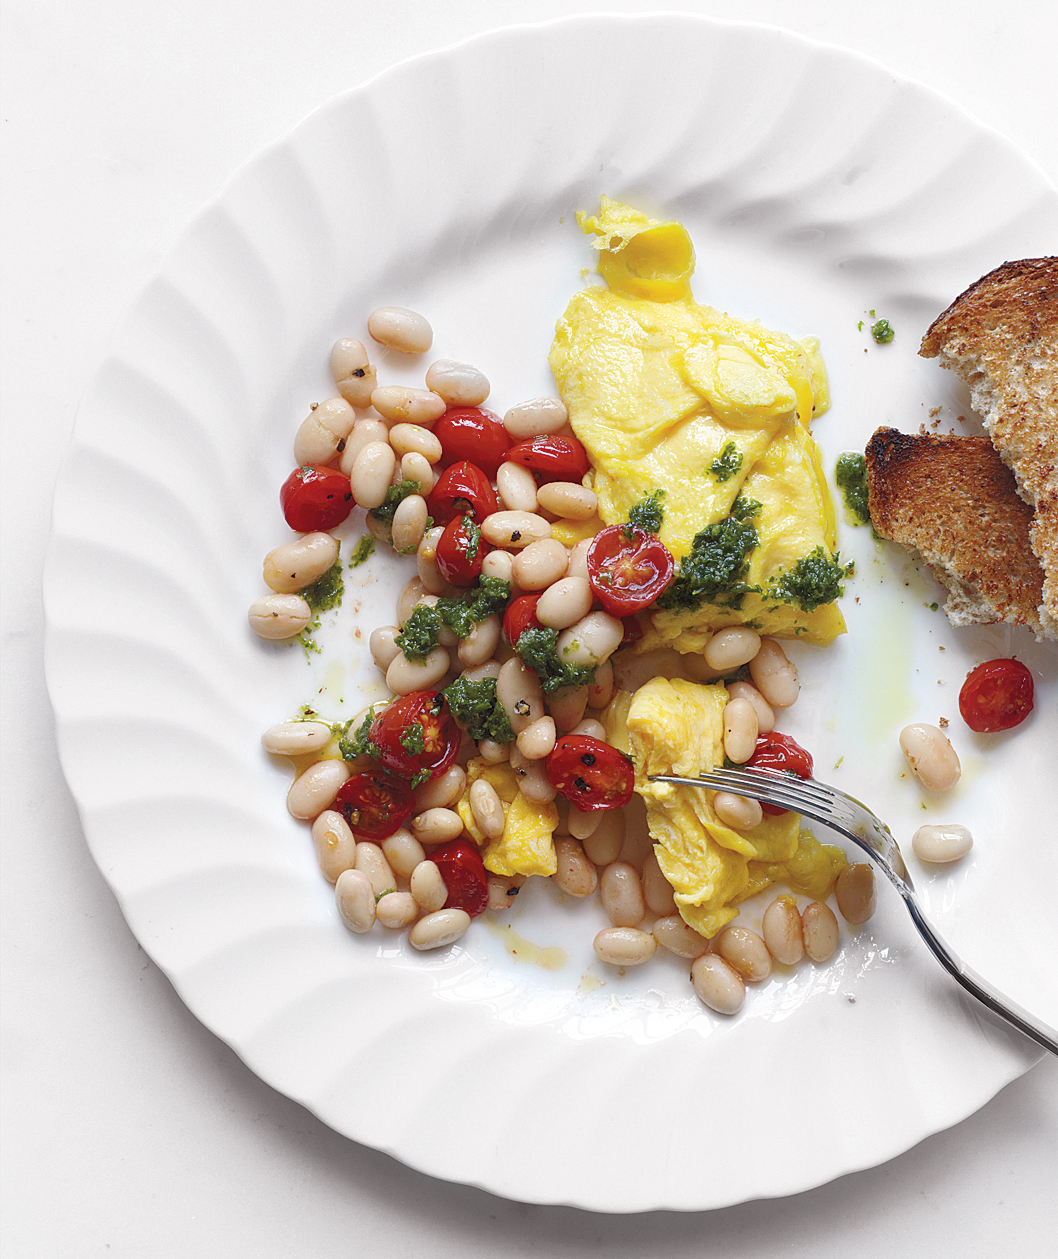 Scrambled Eggs With Beans, Tomatoes, and Pesto